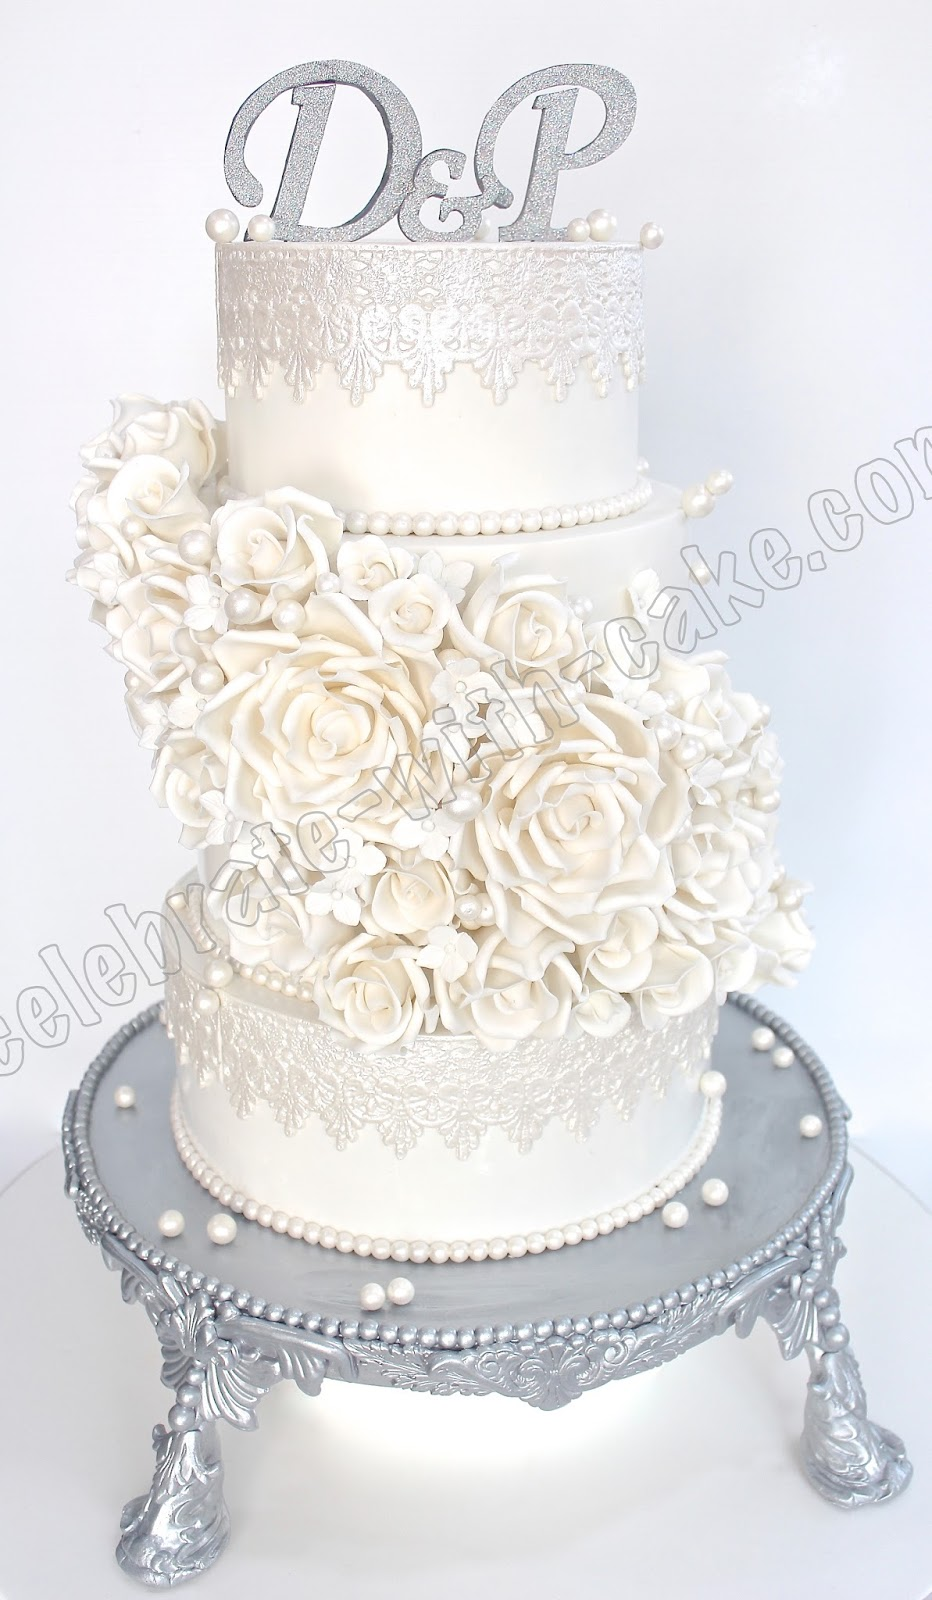 Celebrate with Cake!: Cascading White Roses Wedding Cake